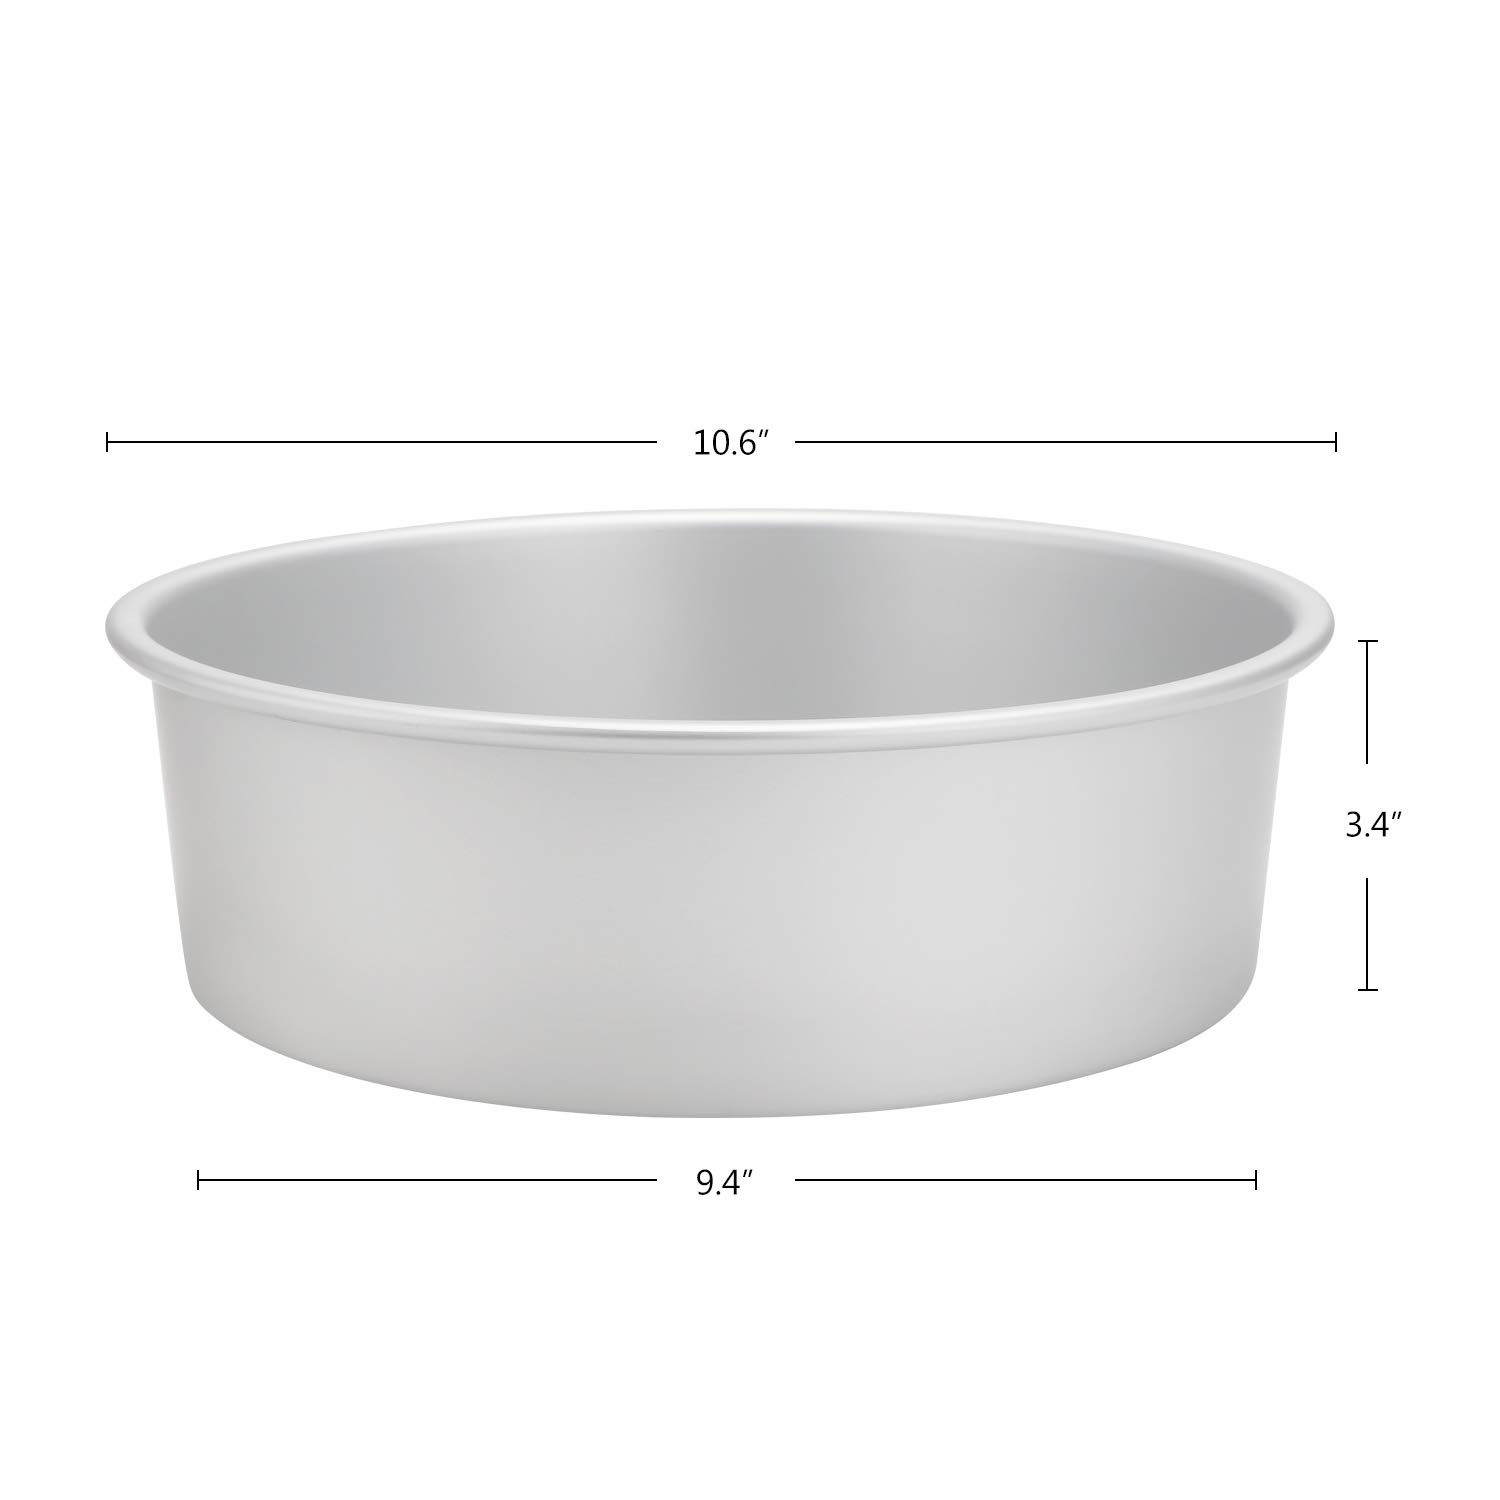 Cake Baking Pan Beasea 6 Inch Set of 2 Aluminum Alloy Round Cake Pan Cheesecake Pan with Removable Bottom